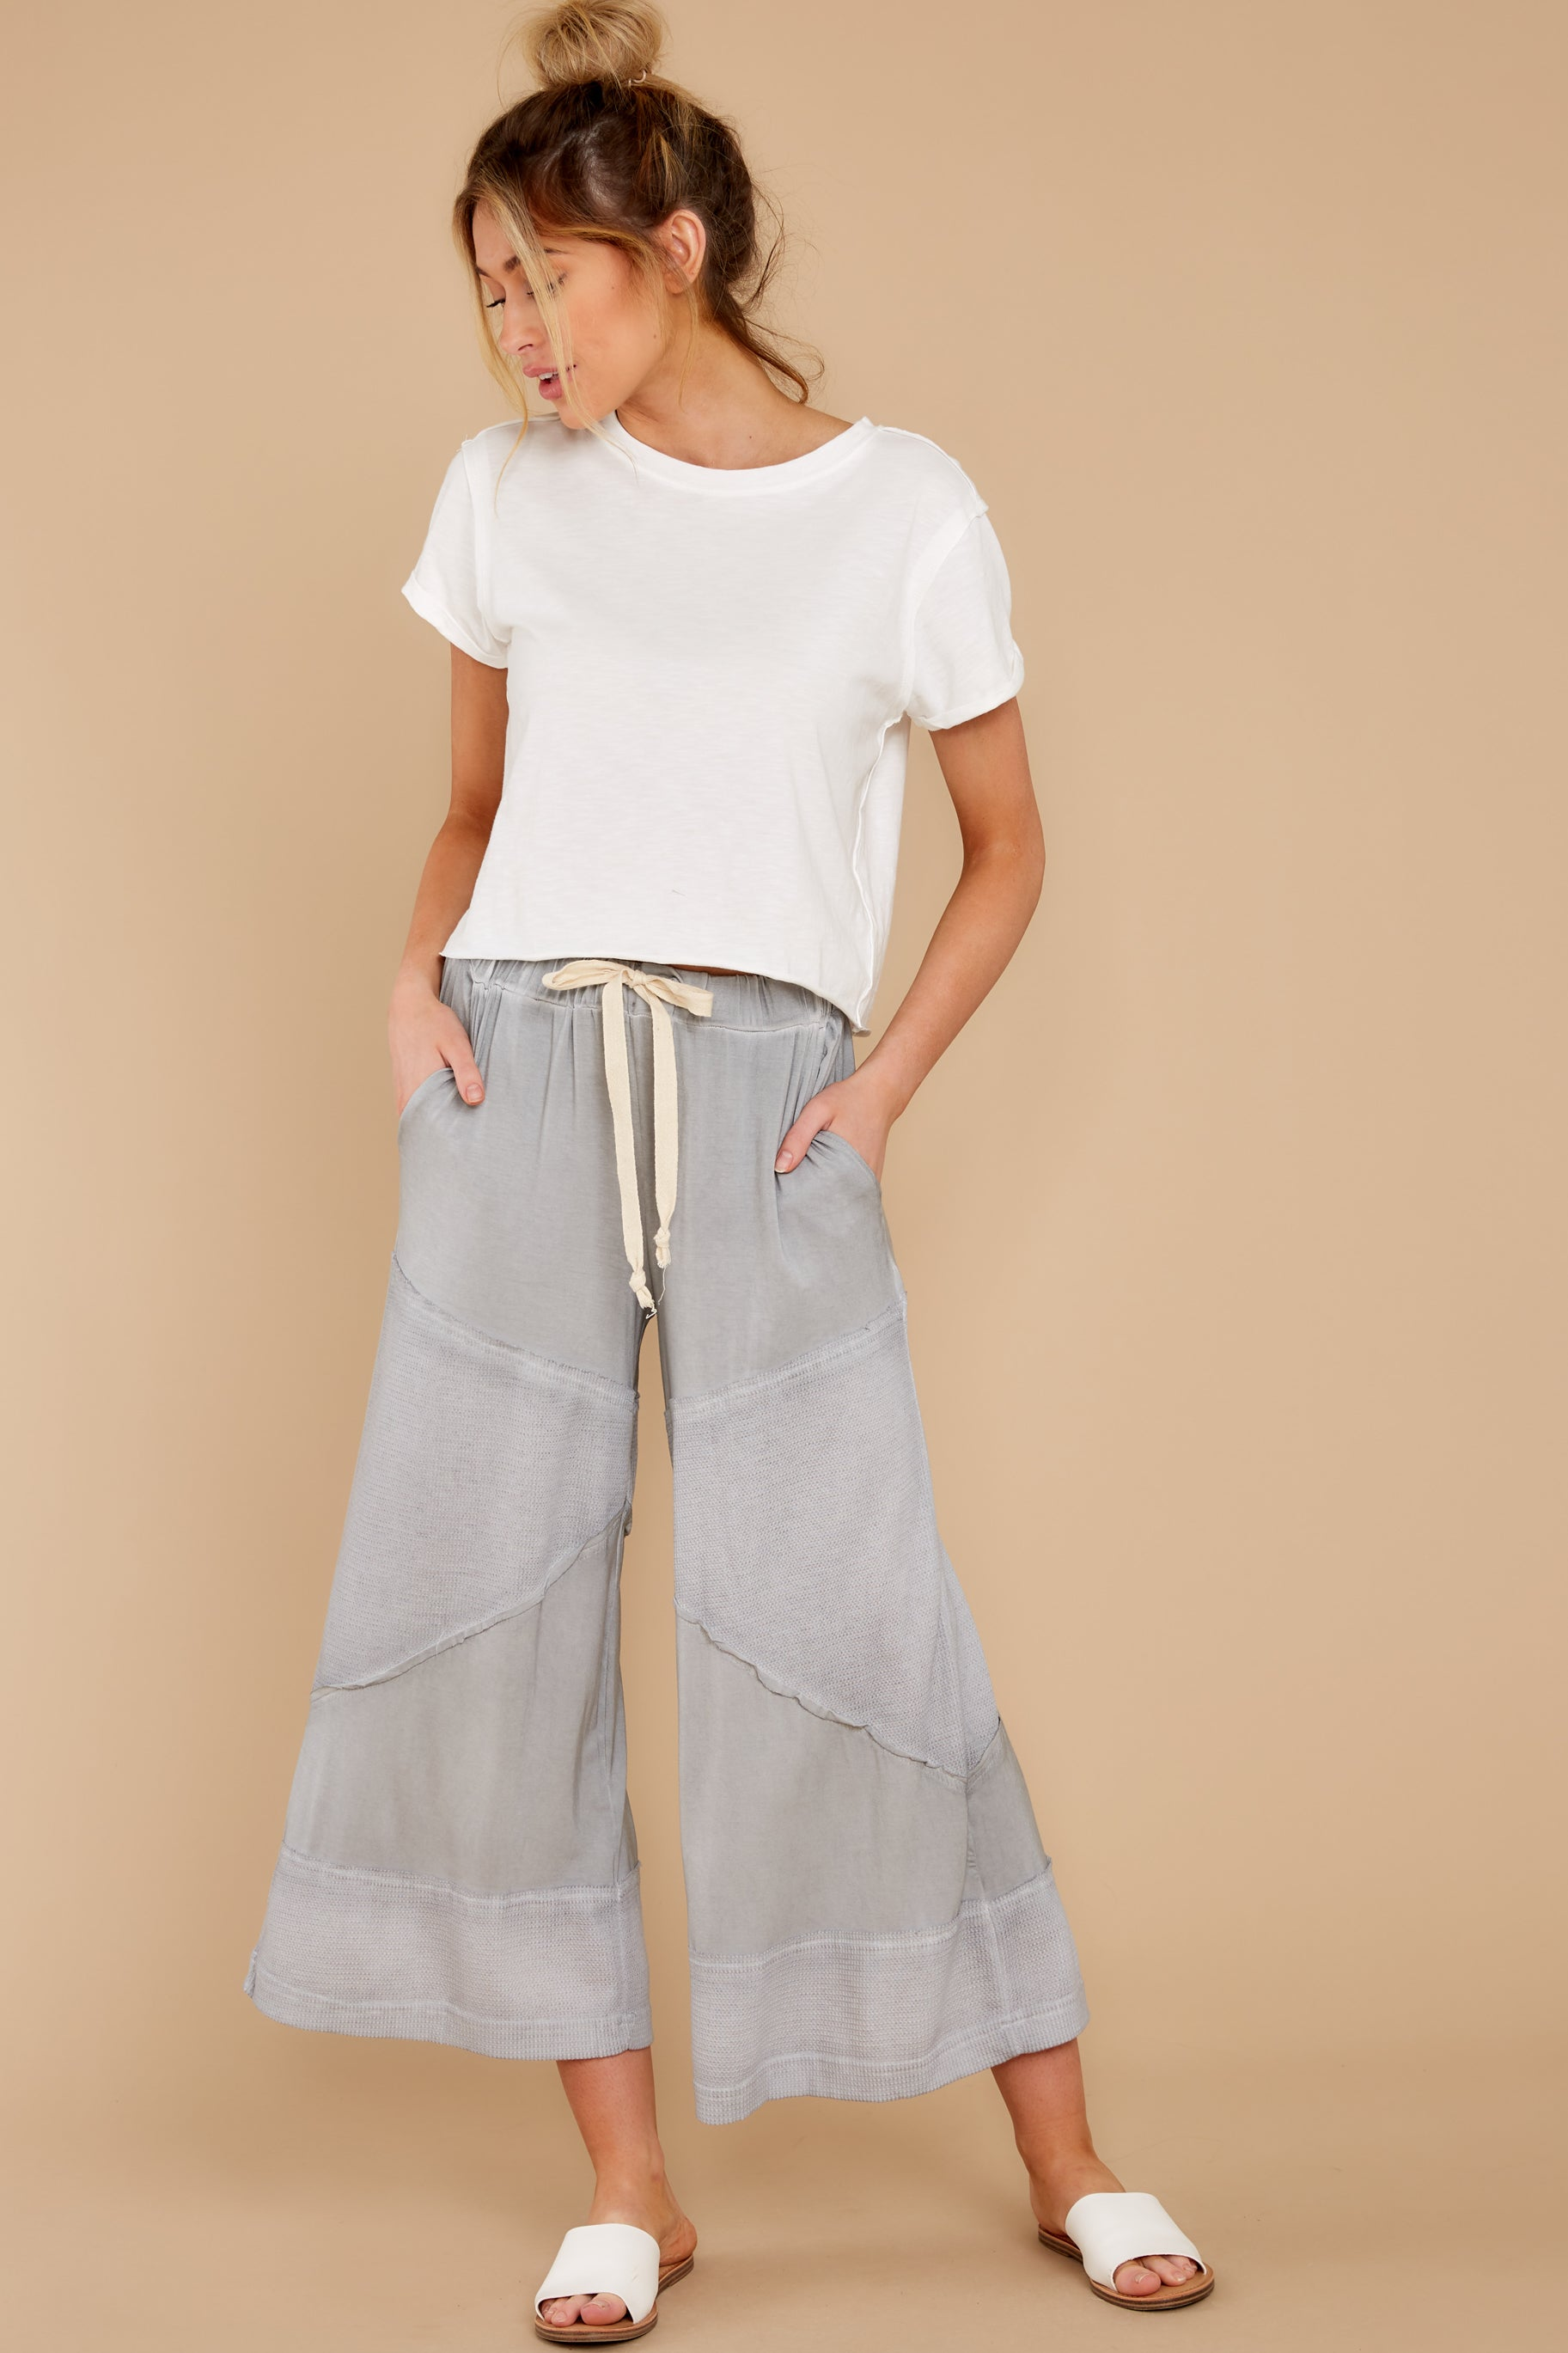 8 On The Other Side Dove Grey Pants at reddress.com